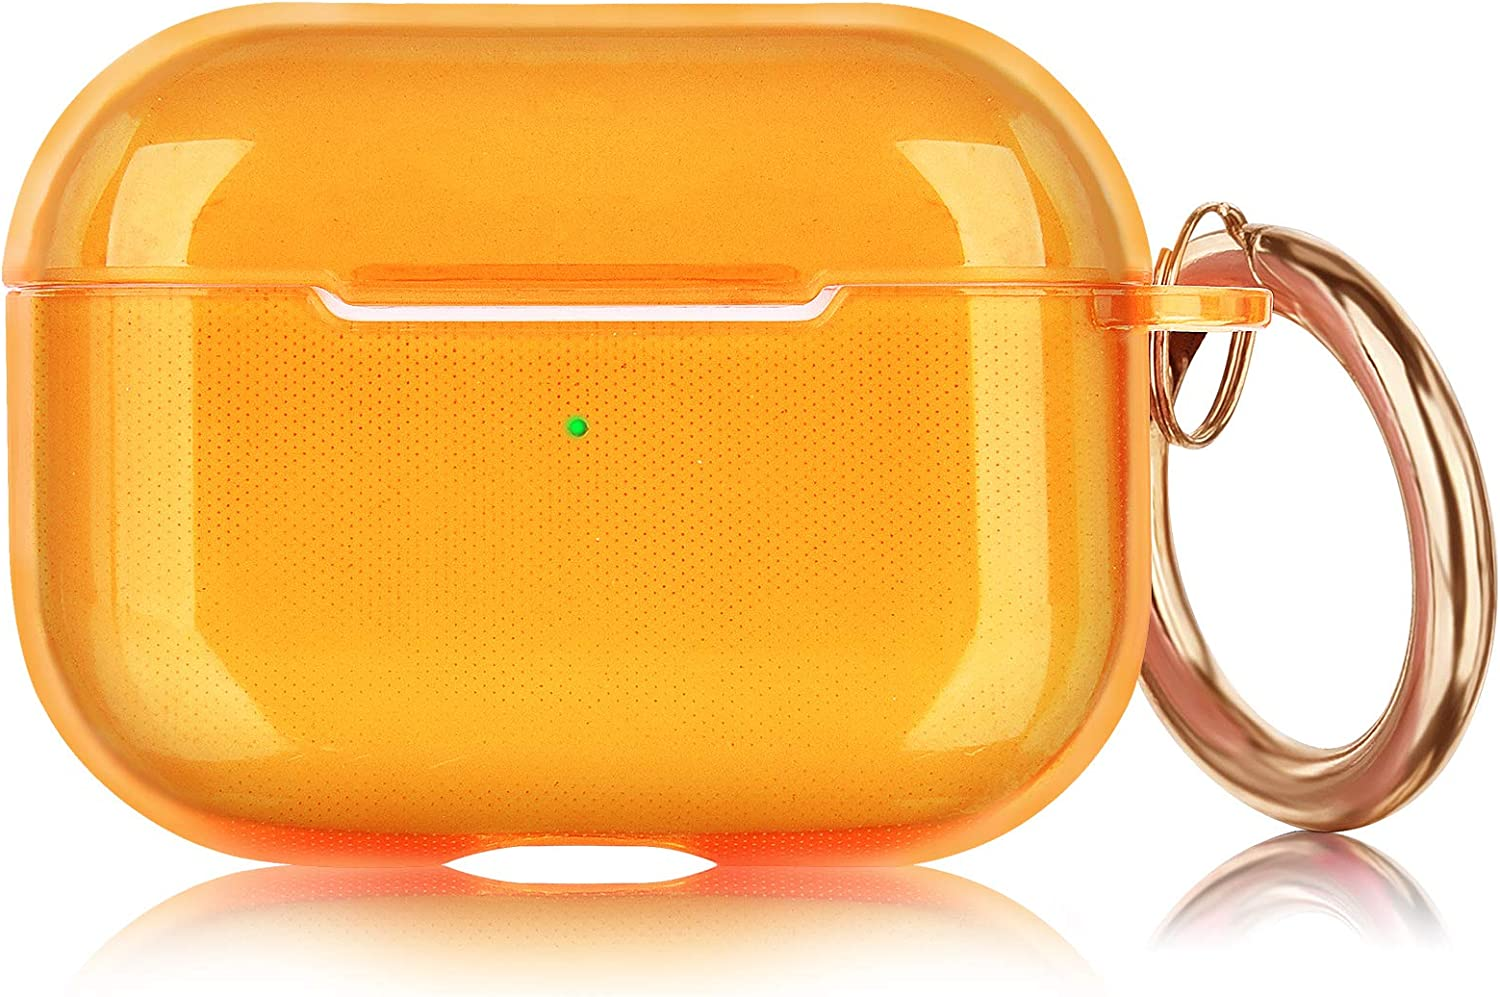 AirPods Pro Case AIRSPO Clear Case for AirPods Pro Charging Case Soft TPU Airpod Pro Protective Case 2019 with Keychain Airpods 3 Protective Cover Skin (Neon Orange)